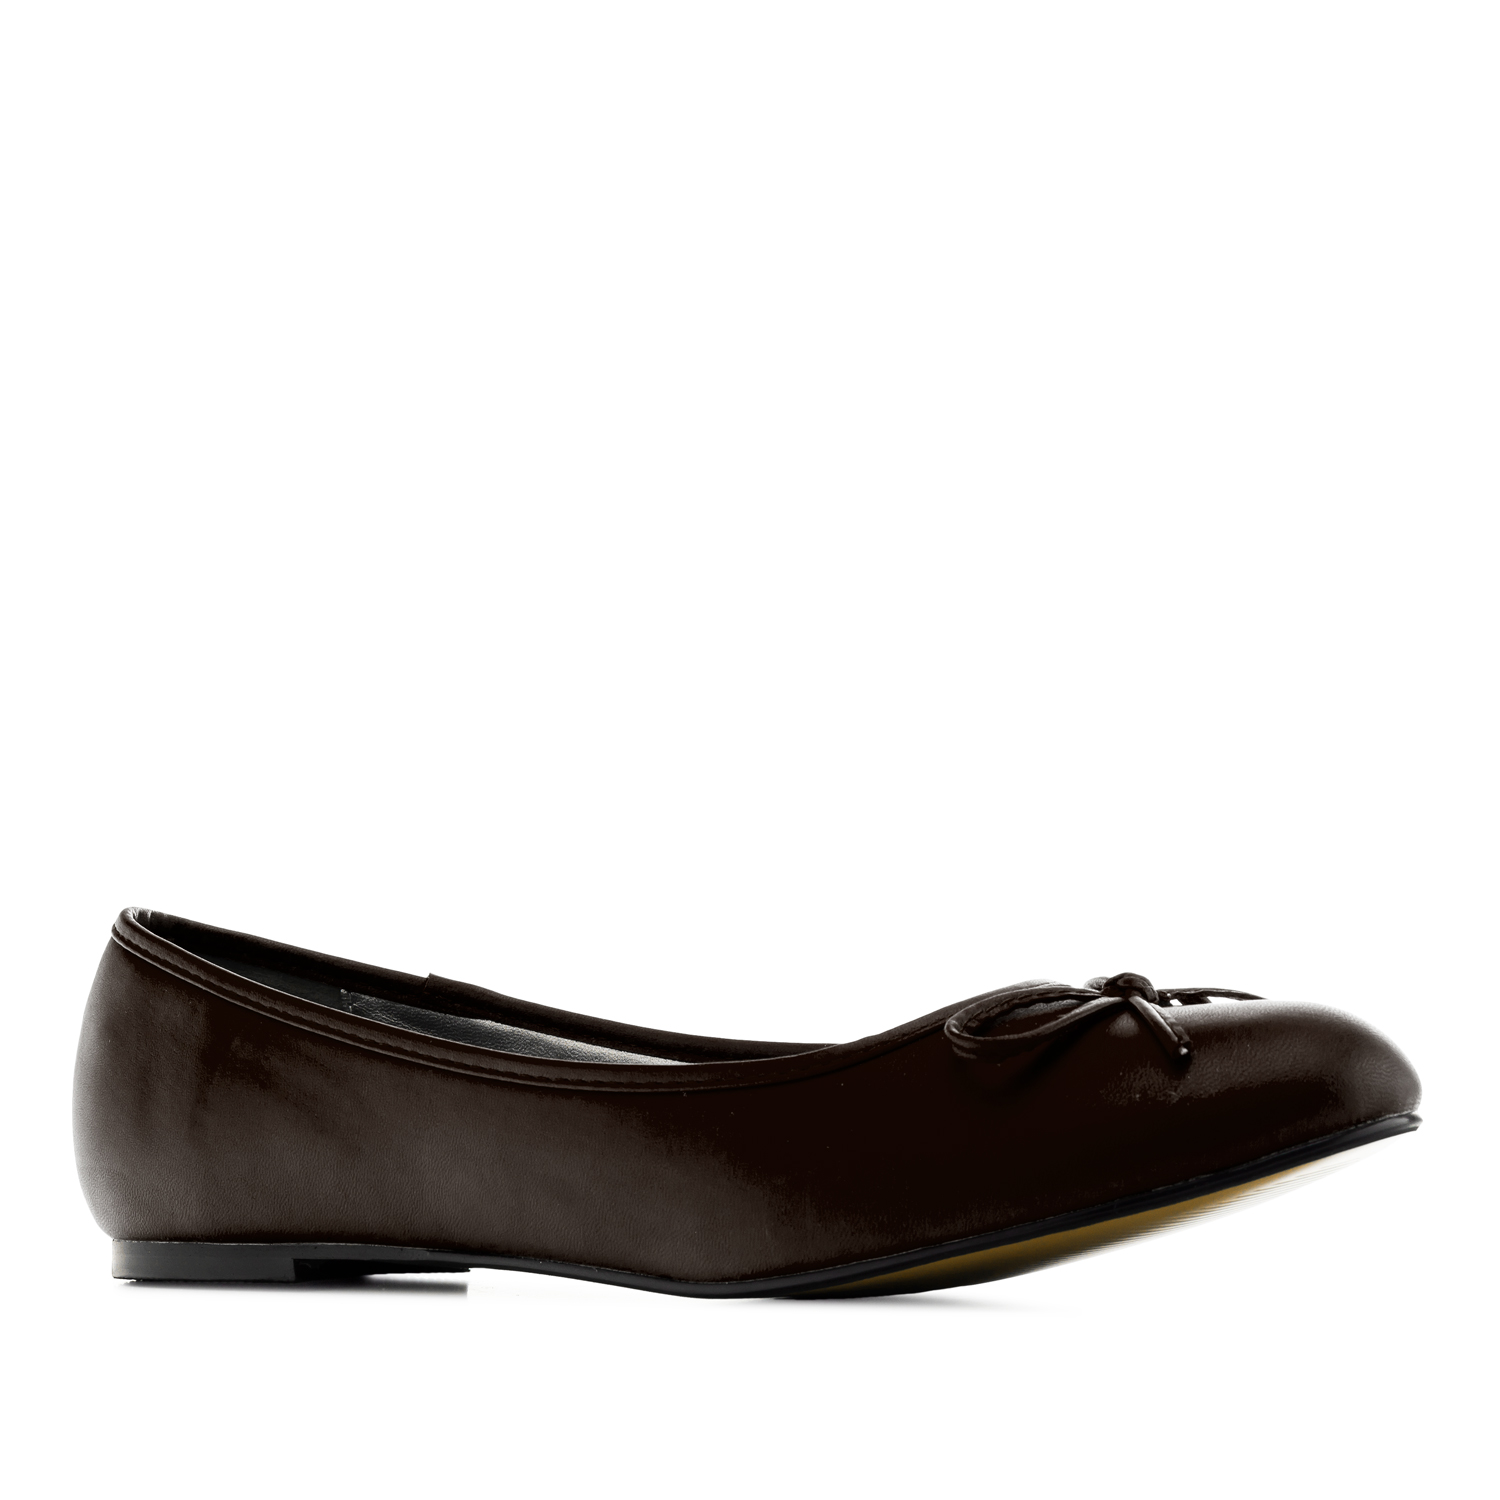 Brown faux-leather Ballerinas with bow.